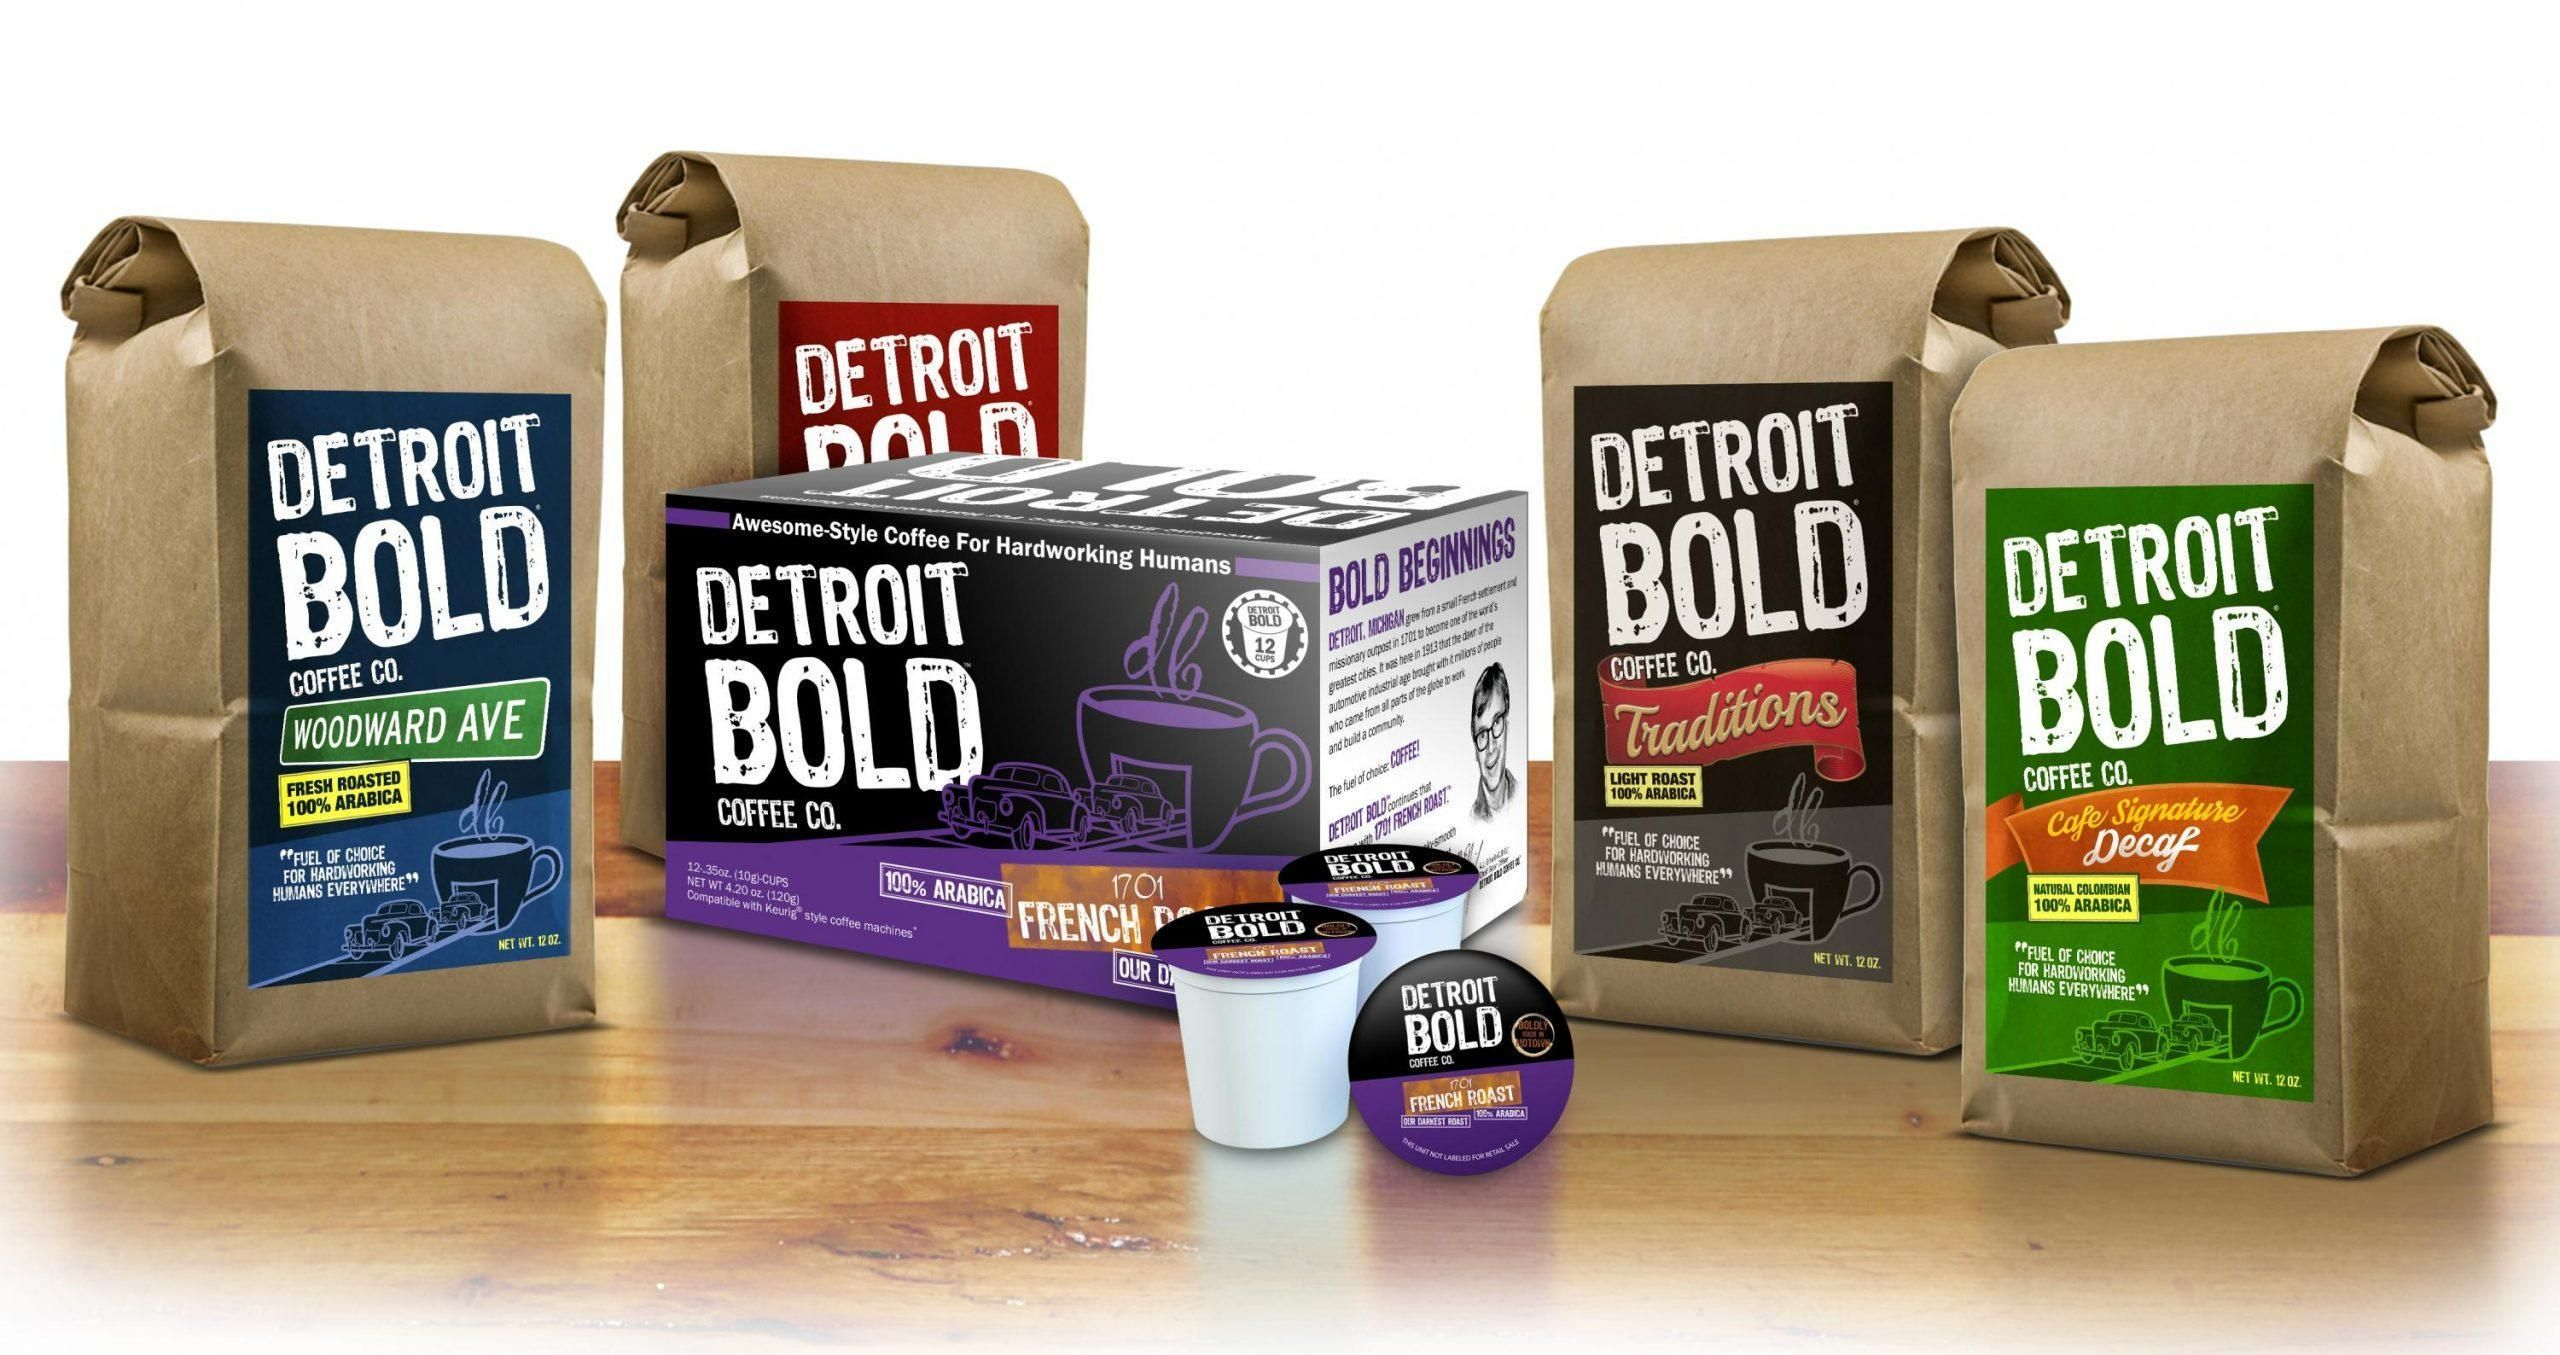 Detroit Bold Coffee Co. fundraiser - running until April 12th, 2021